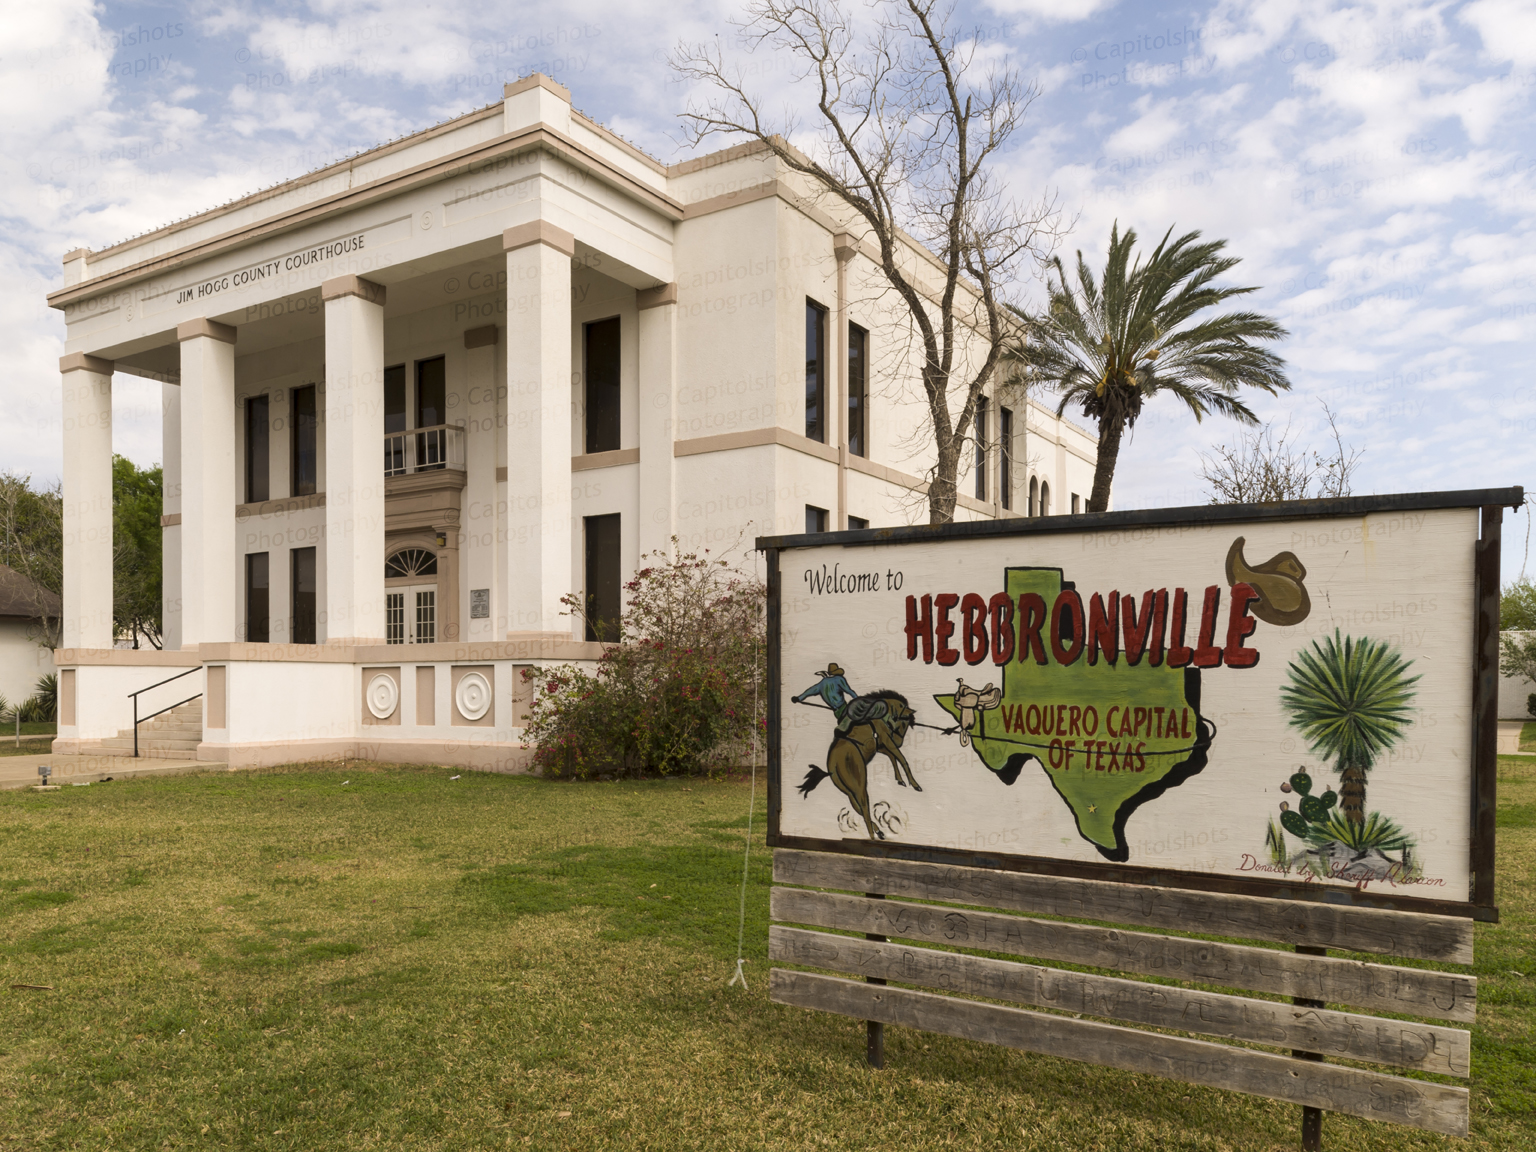 jim hogg county dating Jim hogg county tx jail is located at 211 east galbraith hebbronville, tx 78361 jim hogg county tx jail's phone number is 361-527-4140 361-527-3389  friends and family who are attempting to locate a recently detained family member can use that number to find out if the person is being held at jim hogg county tx jail if you need to send a fax.